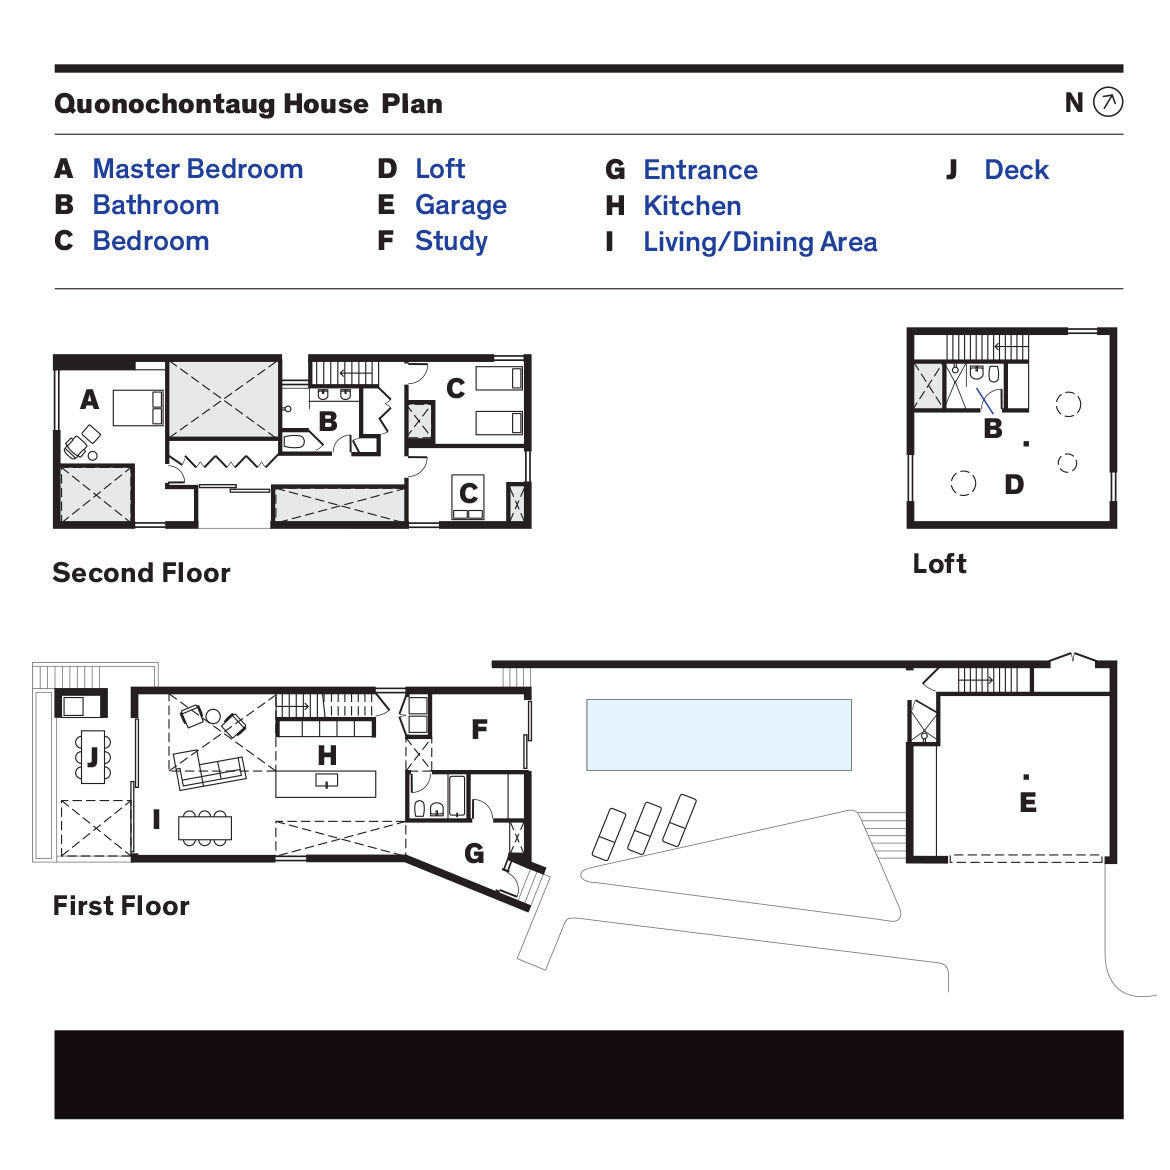 Plan of Rhode Island family vacation home by Bernheimer Architecture.